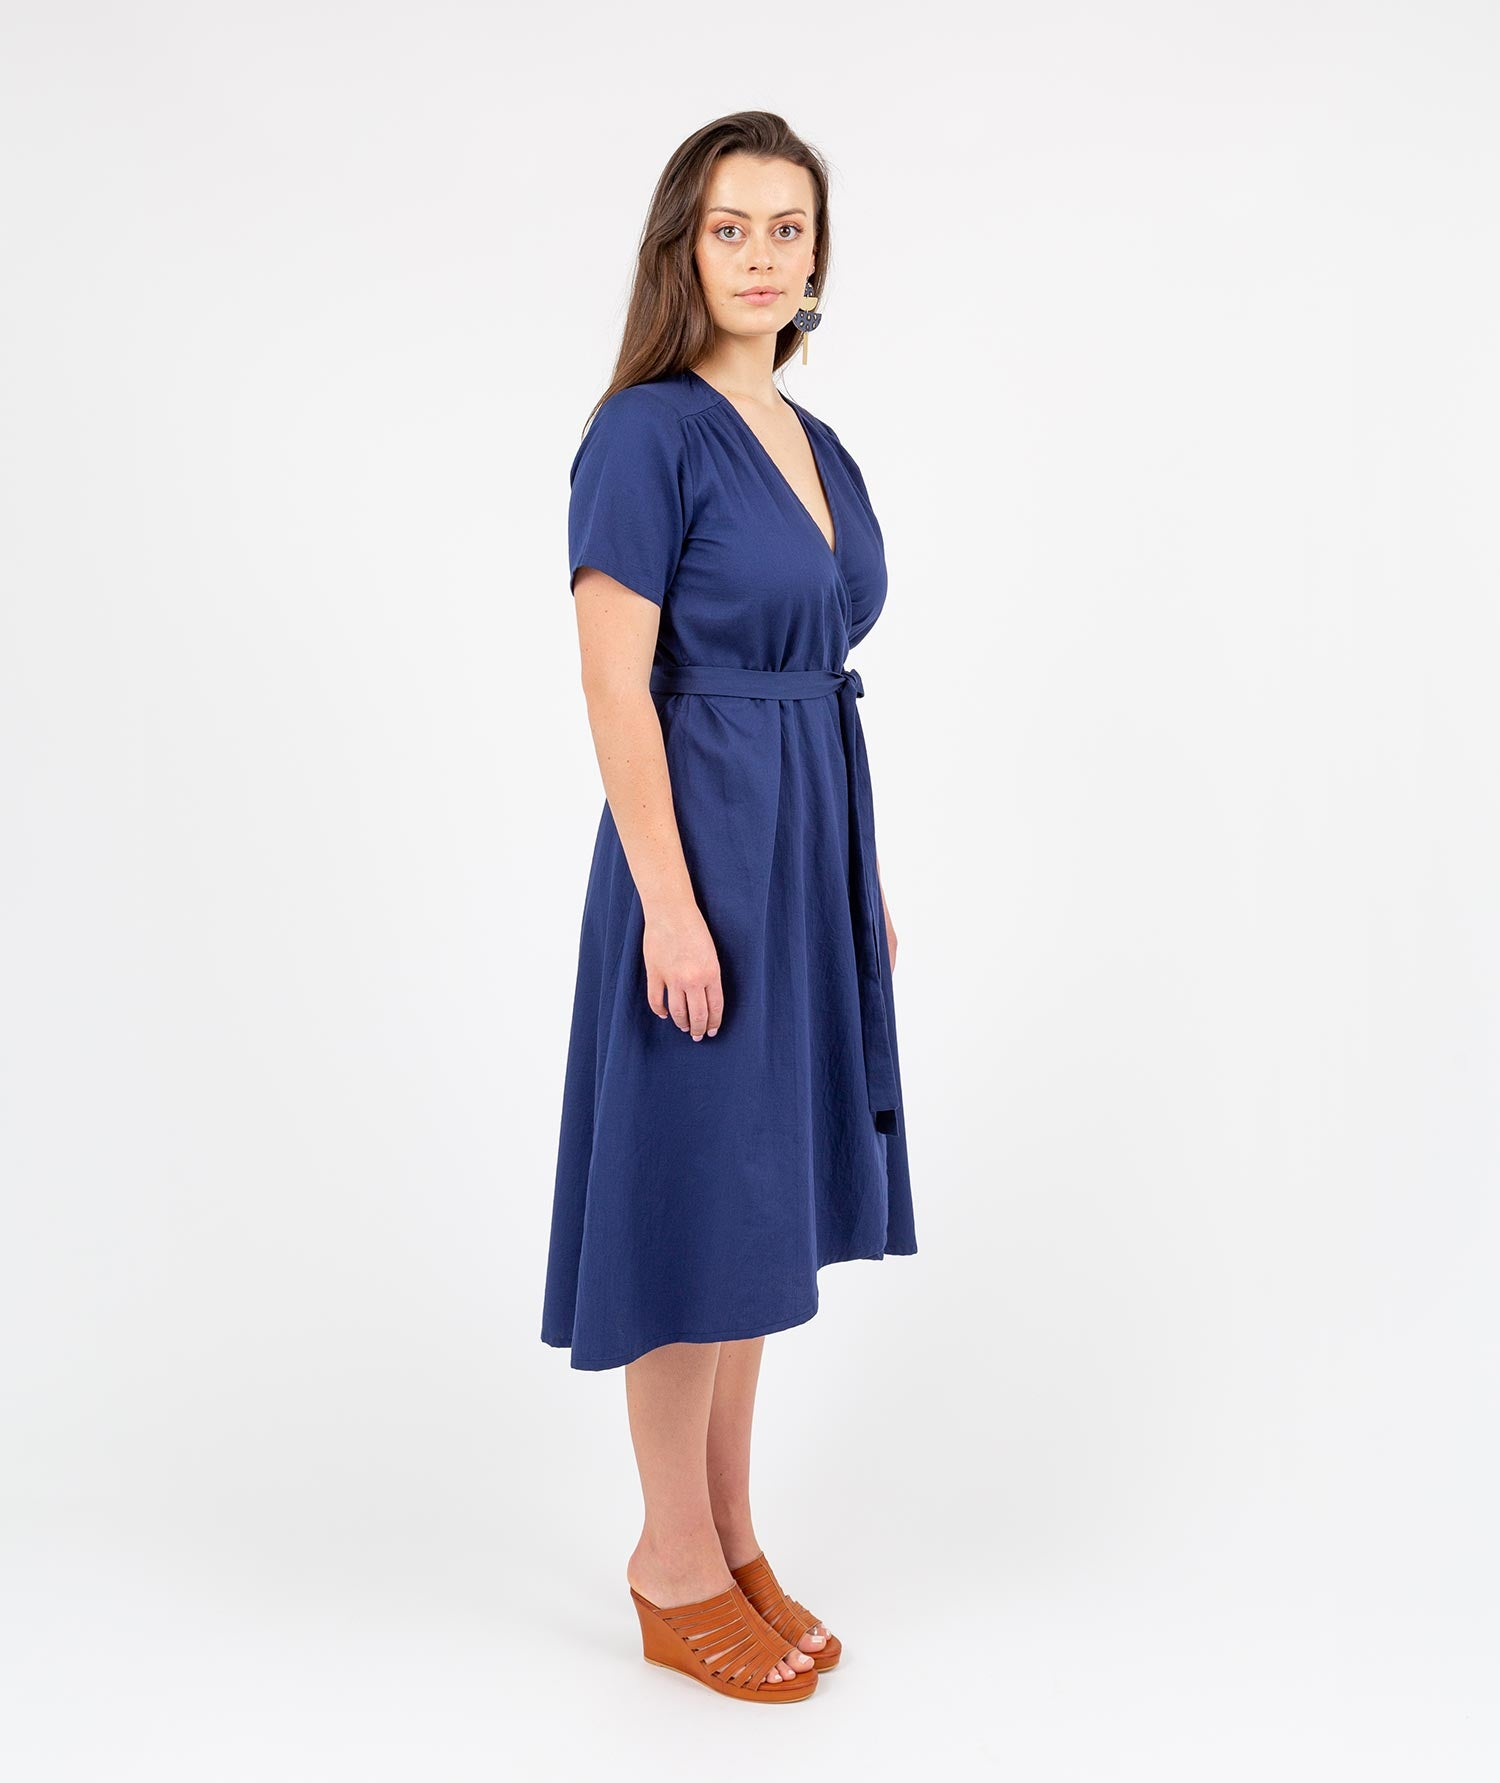 Fusion Tour Wrap Dress Navy by Holi Boli